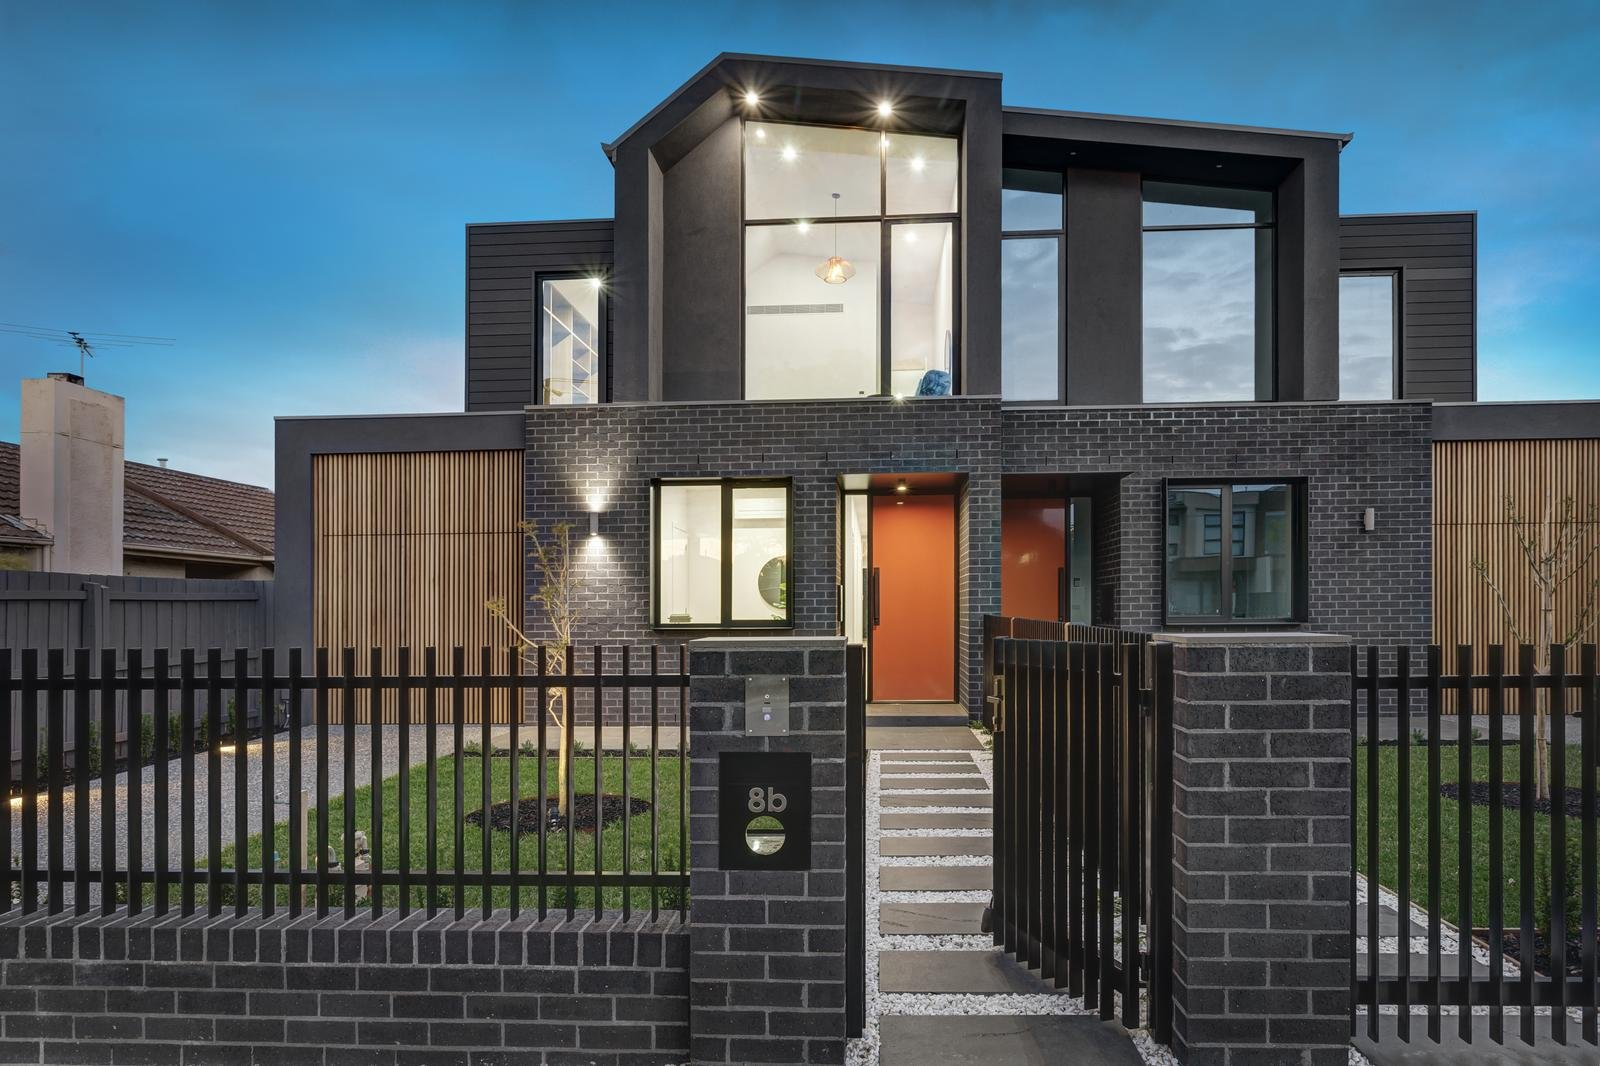 8B Coates Street, Bentleigh - Image 1